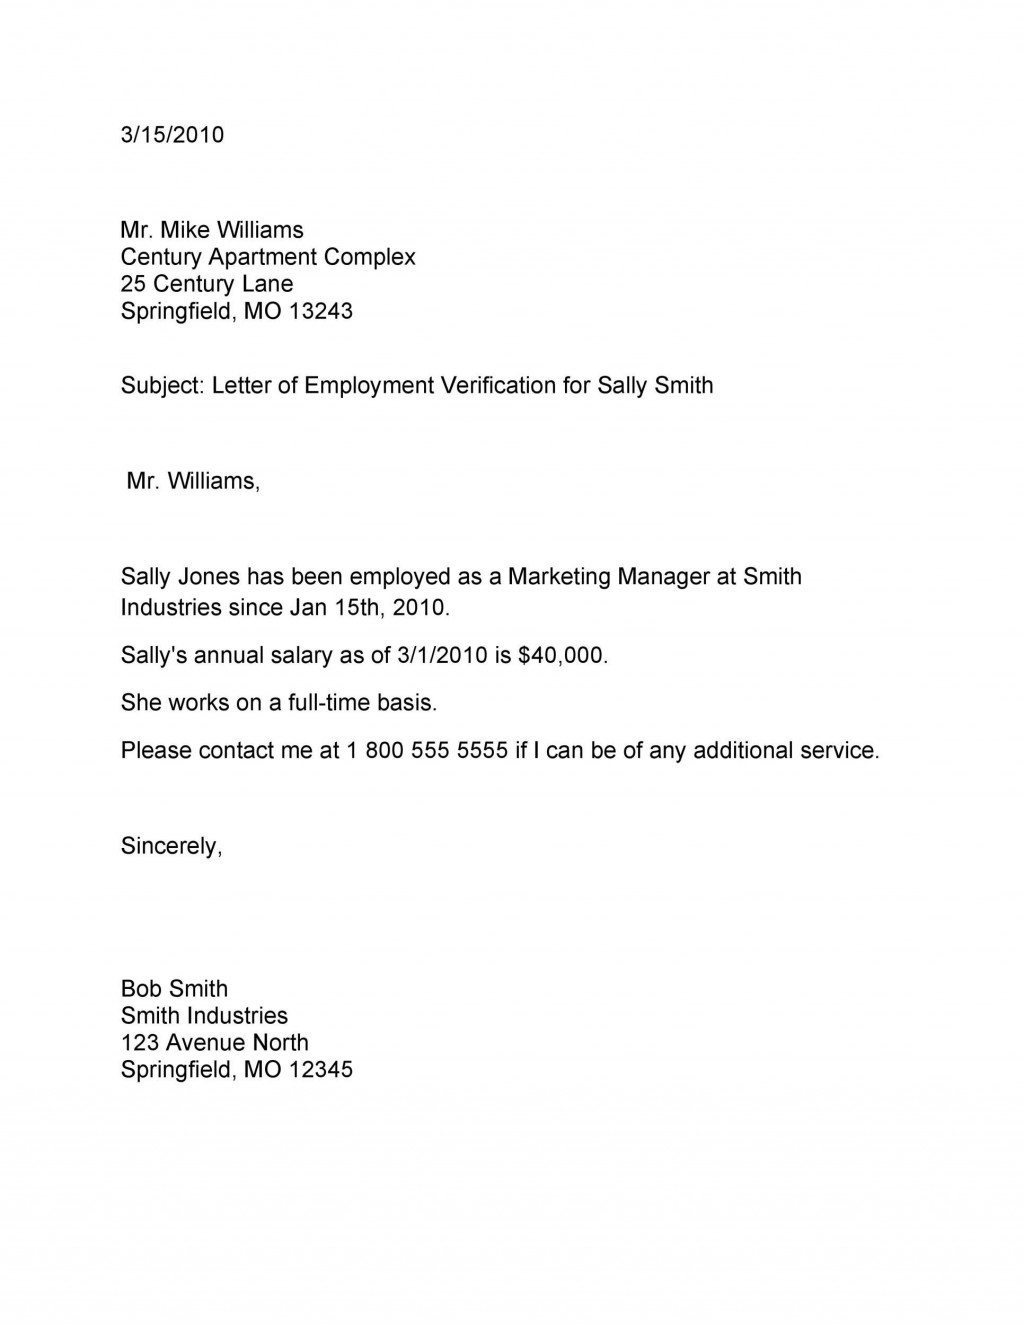 003 Marvelou Confirmation Of Employment Letter Template Nz Example Large